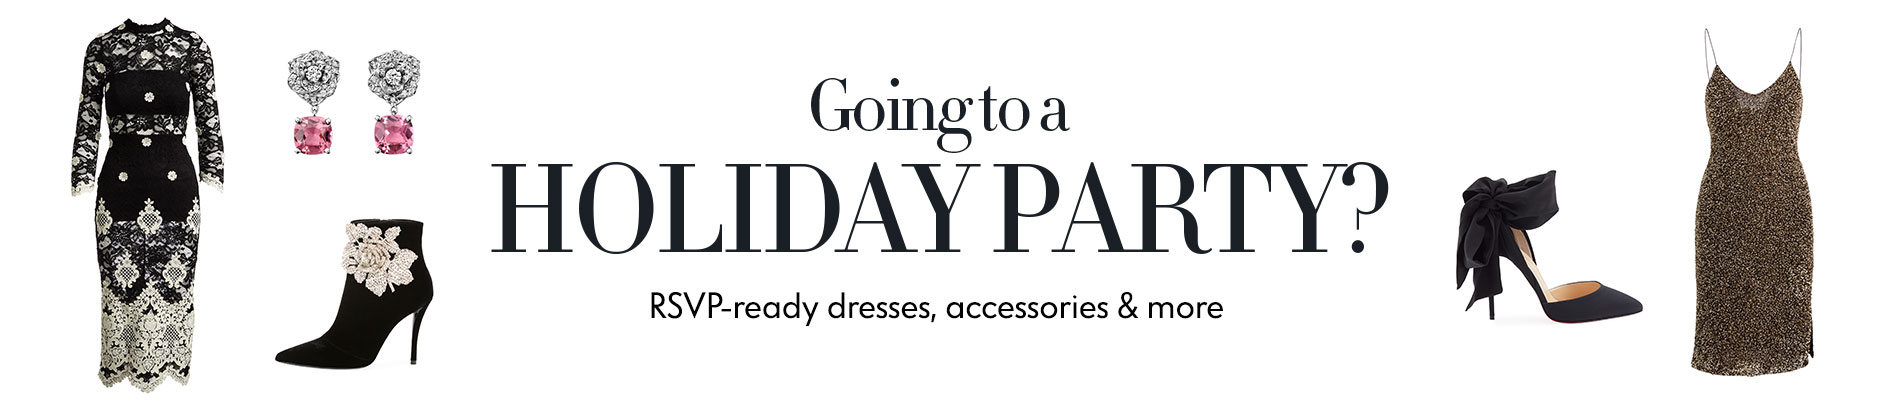 Going to a holiday party? RSVP-ready dresses, accessories & more